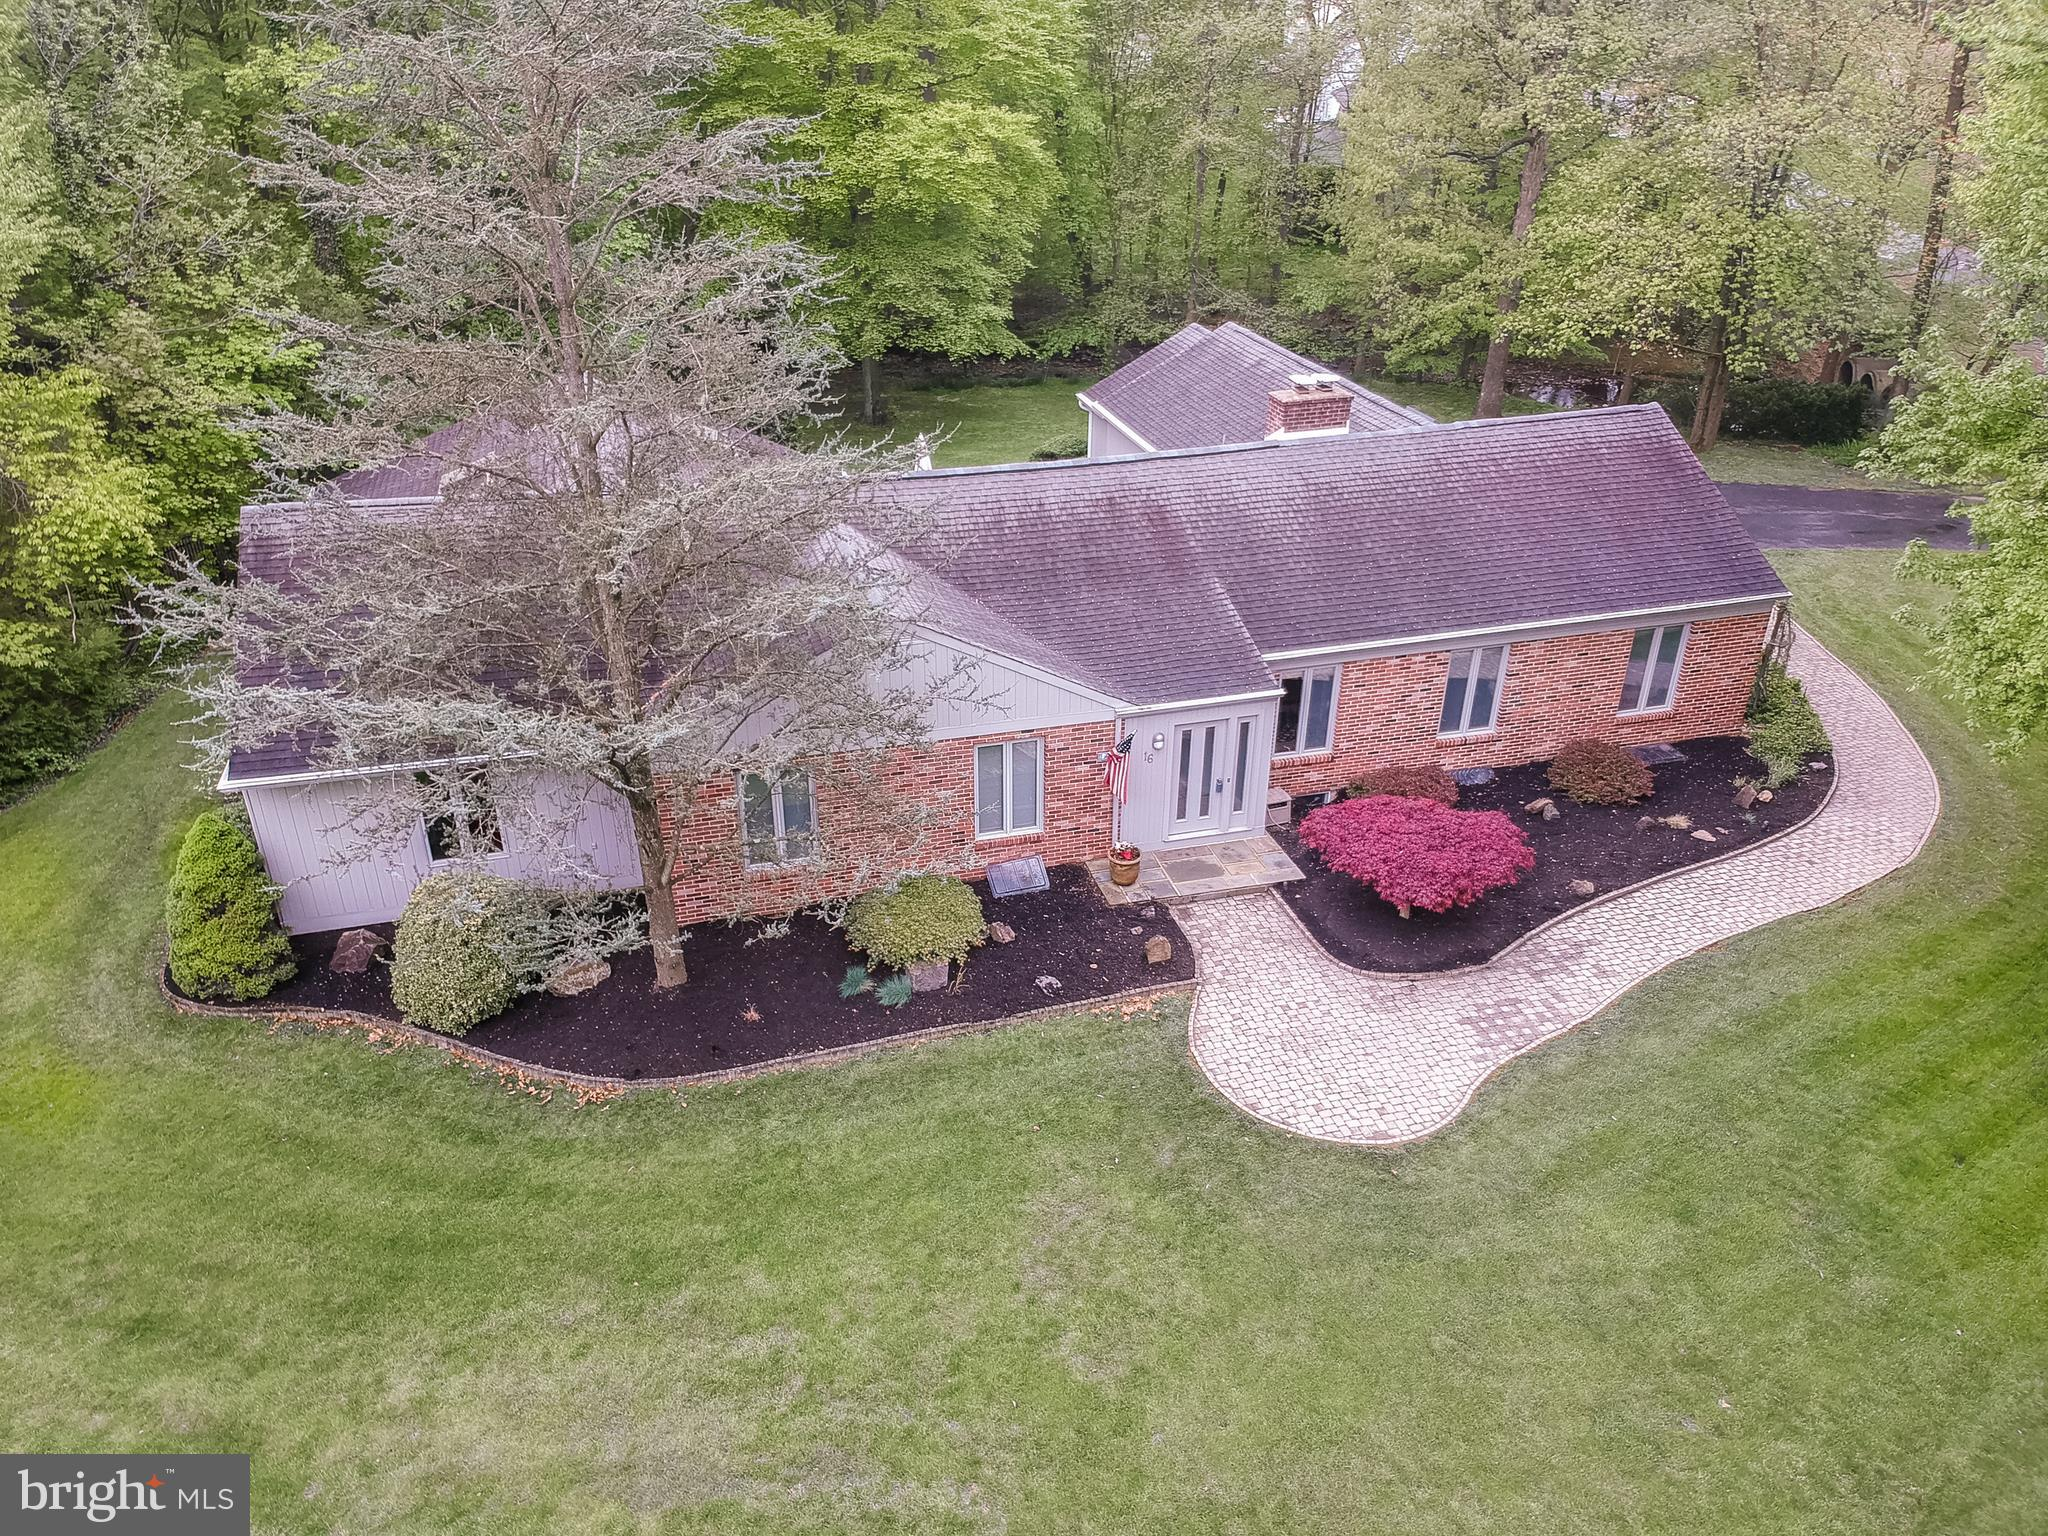 Brandywine Hundred has a secret!  Olde Northminister is a collection  of custom built homes on oversized wooded lots.  The lanes are wide, winding and flow with grace.  The landscaping is sumptuous and plush and the trees are specimens.  16 Broadbent is the flagship property and is perfectly placed on a cleared  corner lot bordered by a brook from a picture book.  No need to leave  your retreat or sanctuary because it has it all.   Float your paper boats outside your door, but remember that premier shopping, top flight schools and award winning  restaurants and bars are within an evening stroll.  The design of this contemporary home boasts spacious, sunny rooms,  flowing floor plan for family and friends and oodles of class.  The master suite has built in storage galore and lots of top shelf extras, not found in other homes.  The family bedrooms features  good closet space, spectacular views and feeling of privacy.  The Great Room is Great and offers you a view to the great outdoors with a brook, terraces and easily landscaped grounds.  Don't forget the fireplaces for those chilly evenings.  The formal living room and dining room are mood-setting and comfortable at the same time.  Your guests will enjoy the ambiance and again the ease of comfort.  Please stop by to see what you have been missing.,  This is truly one of a kind.                                                                                   (all my clients live happily....ever after)